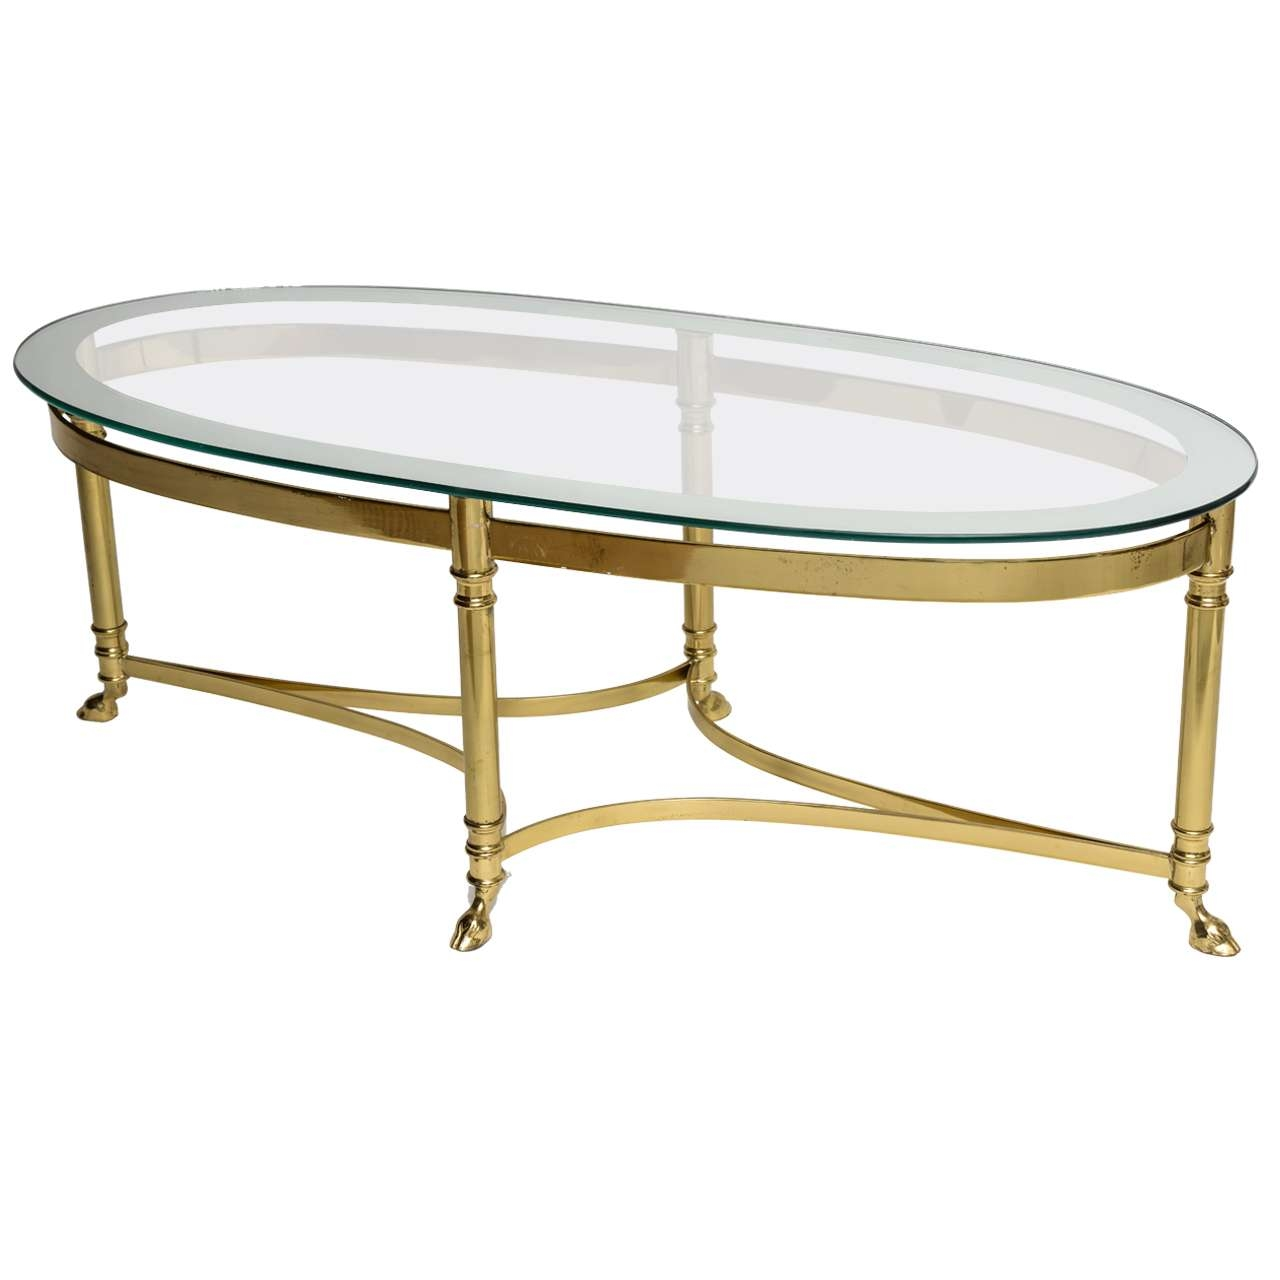 Trendy Vintage Glass Top Coffee Tables Inside Coffee Table: Oval Glass Top Coffee Table Glass For Table Tops (View 17 of 20)